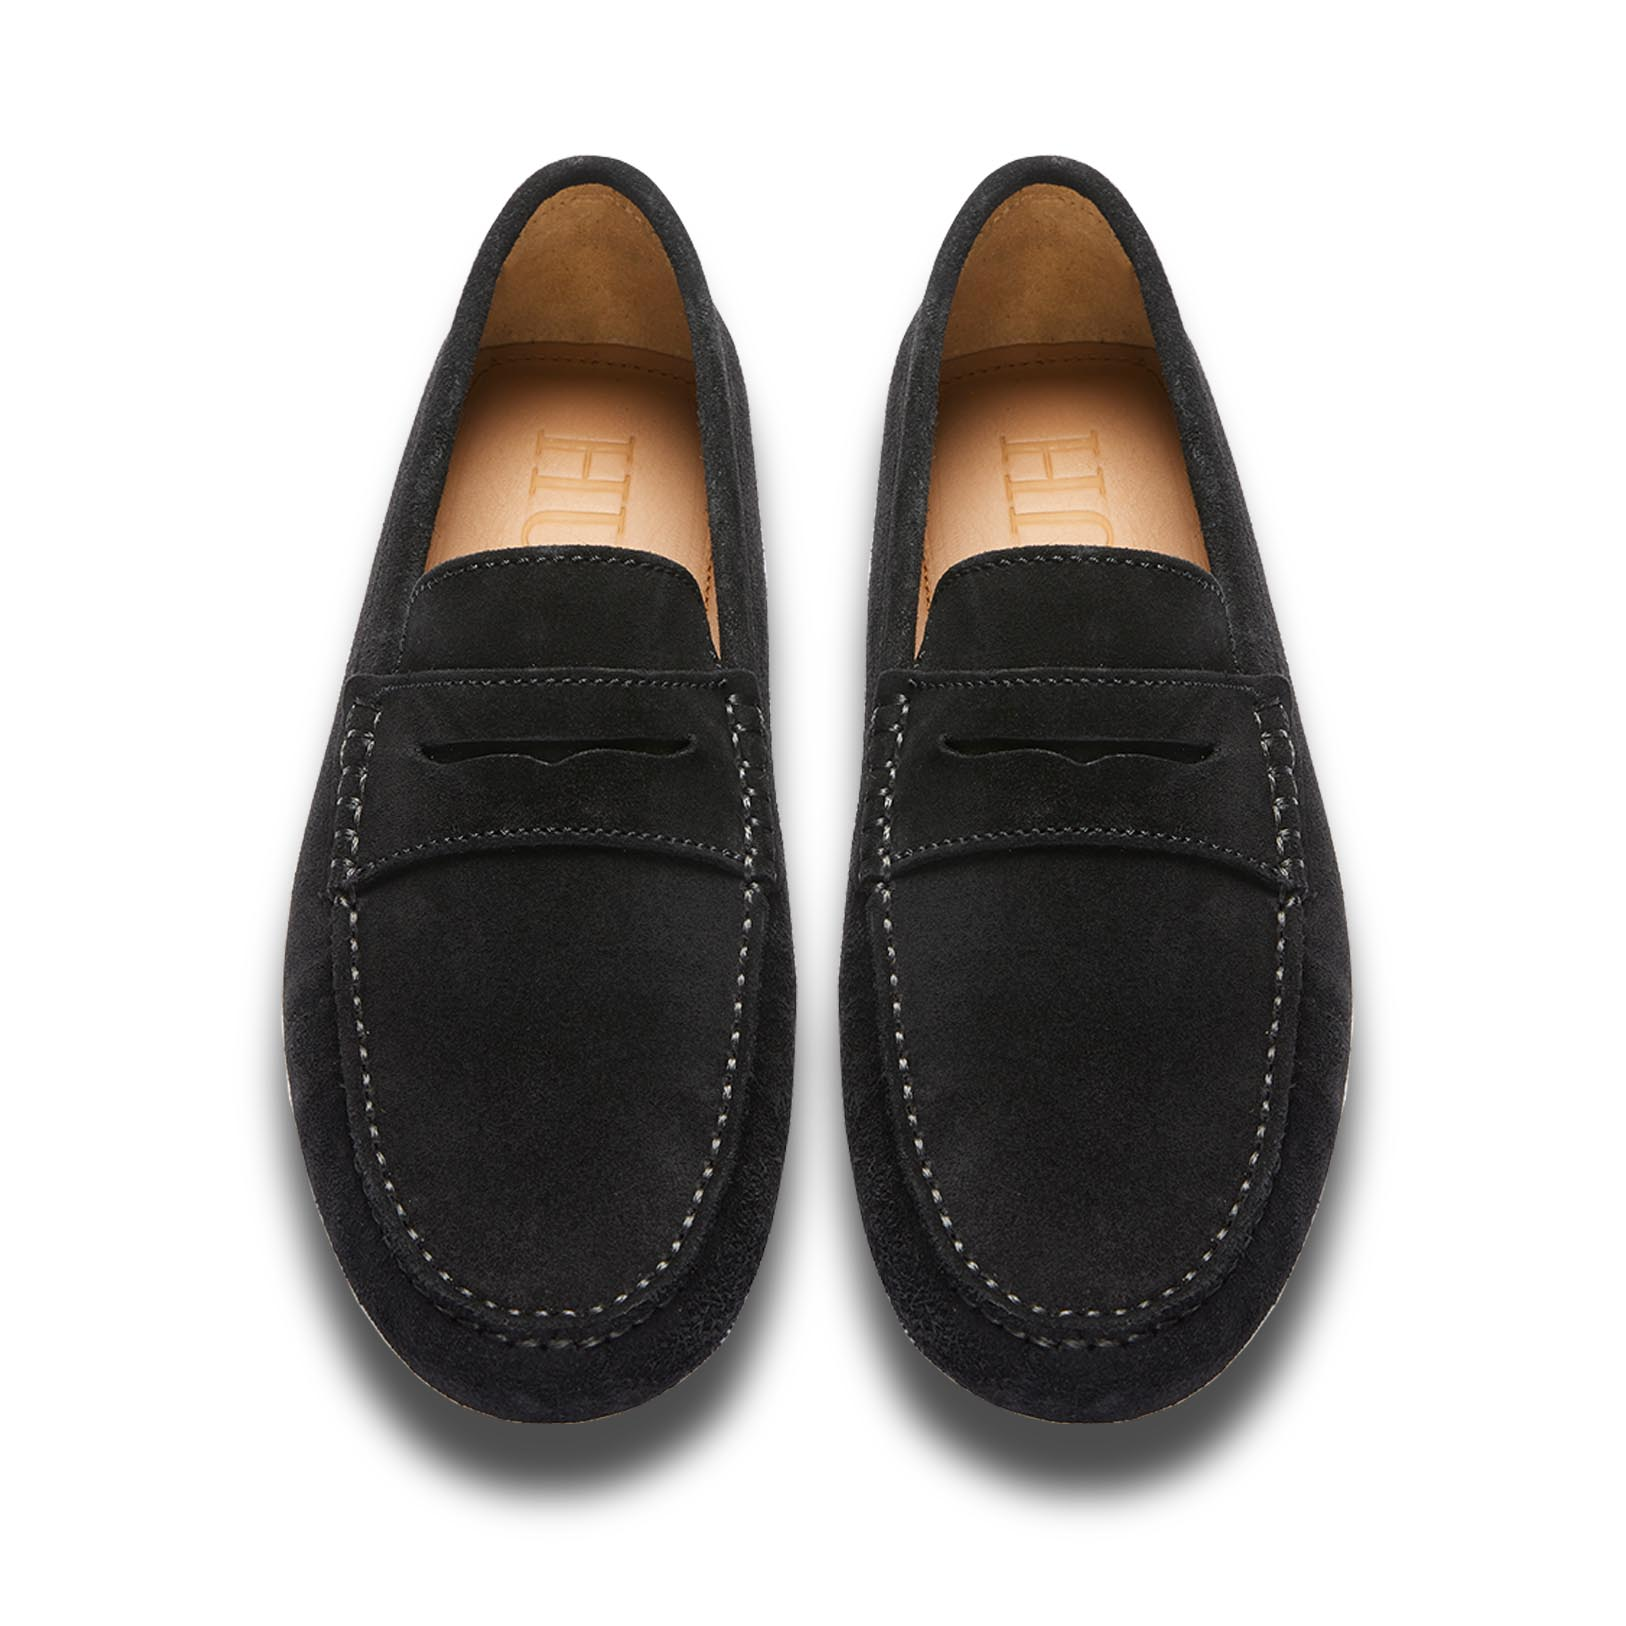 898f4409db0 ... Co Penny Loafer Black Suede. 🔍. Previous  Next